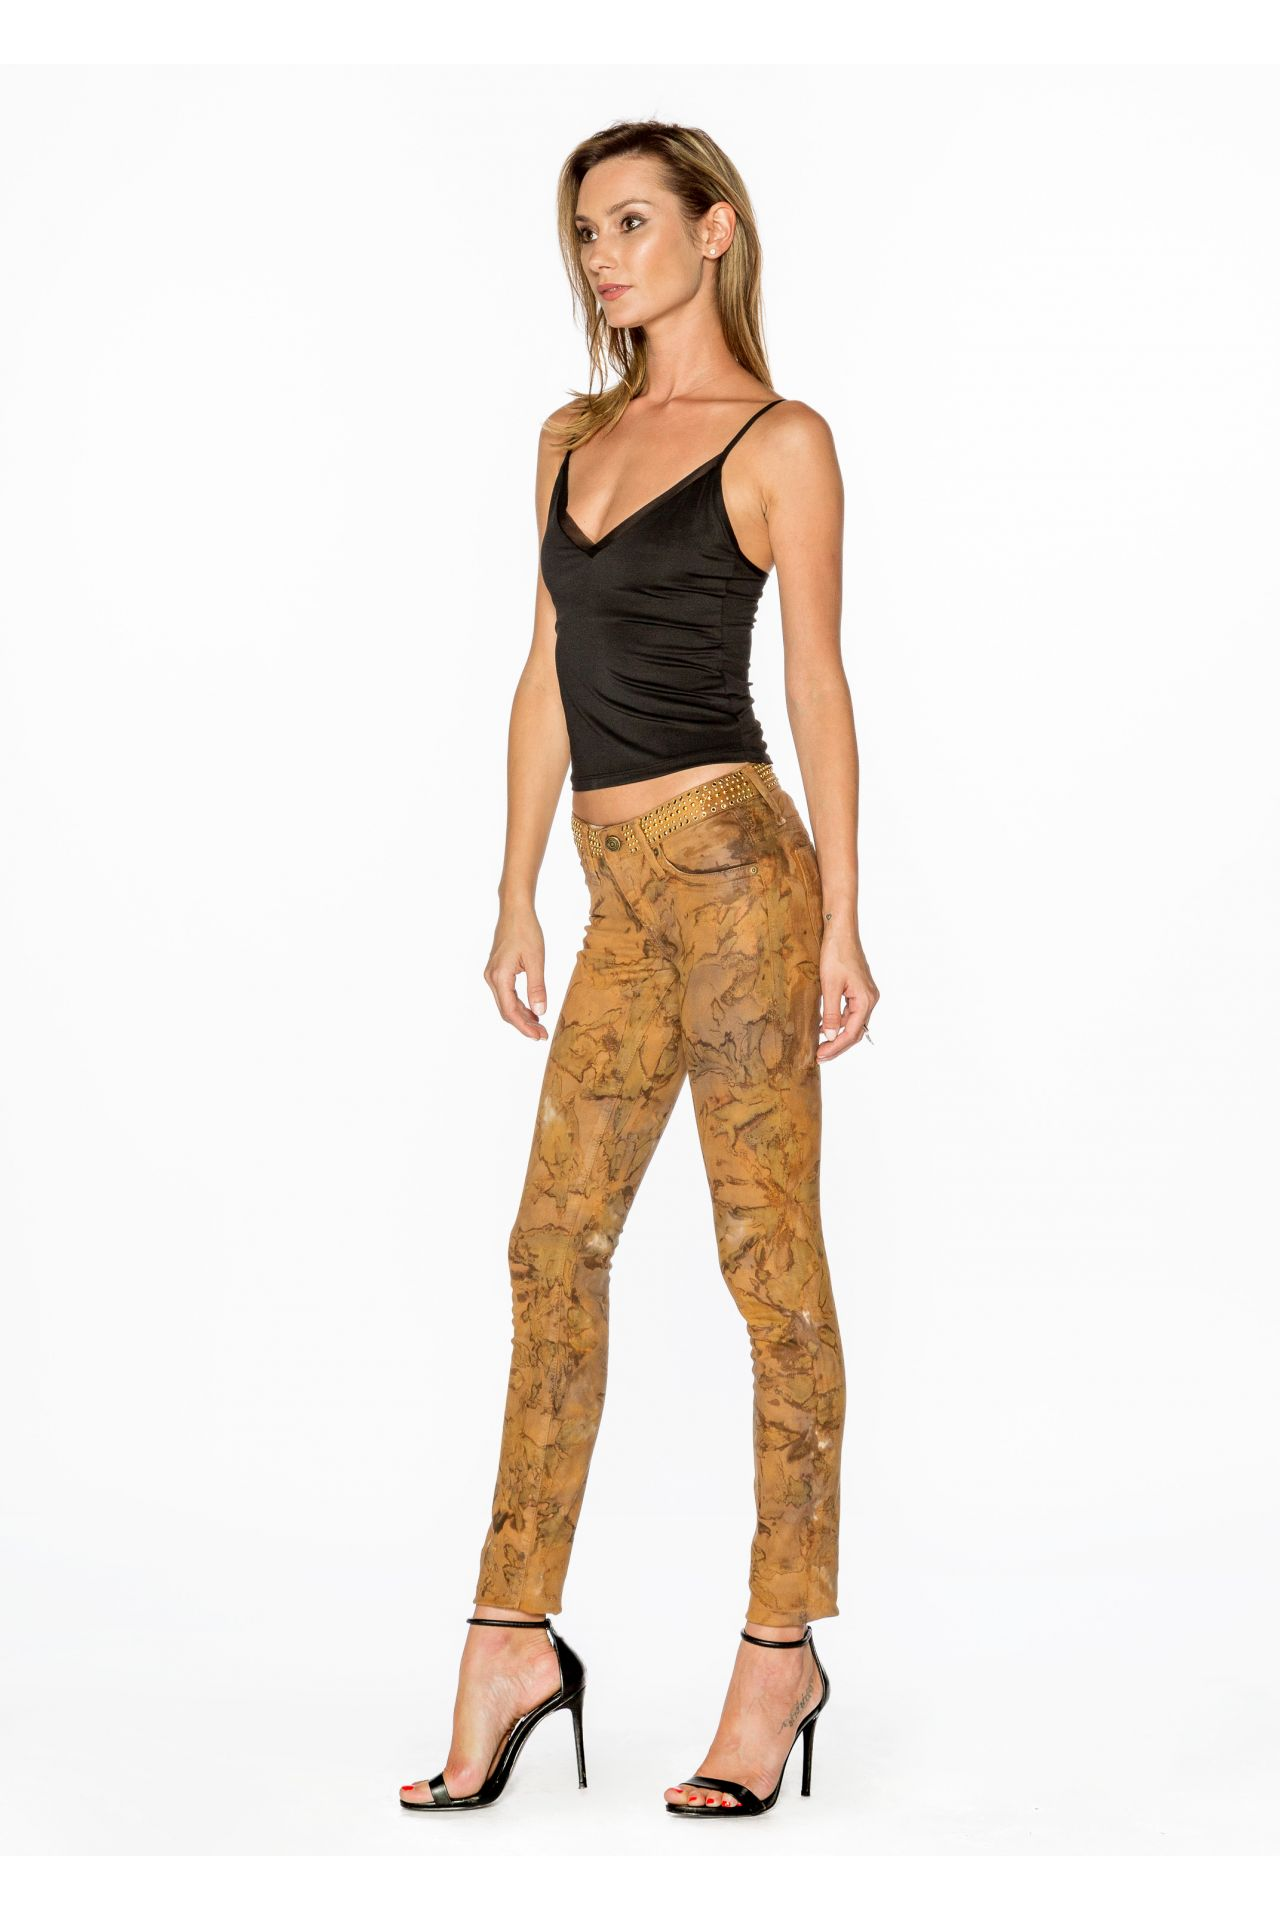 LOW WAISTED SKINNY JEANS IN MUD BROWN WITH STUDS AND SW